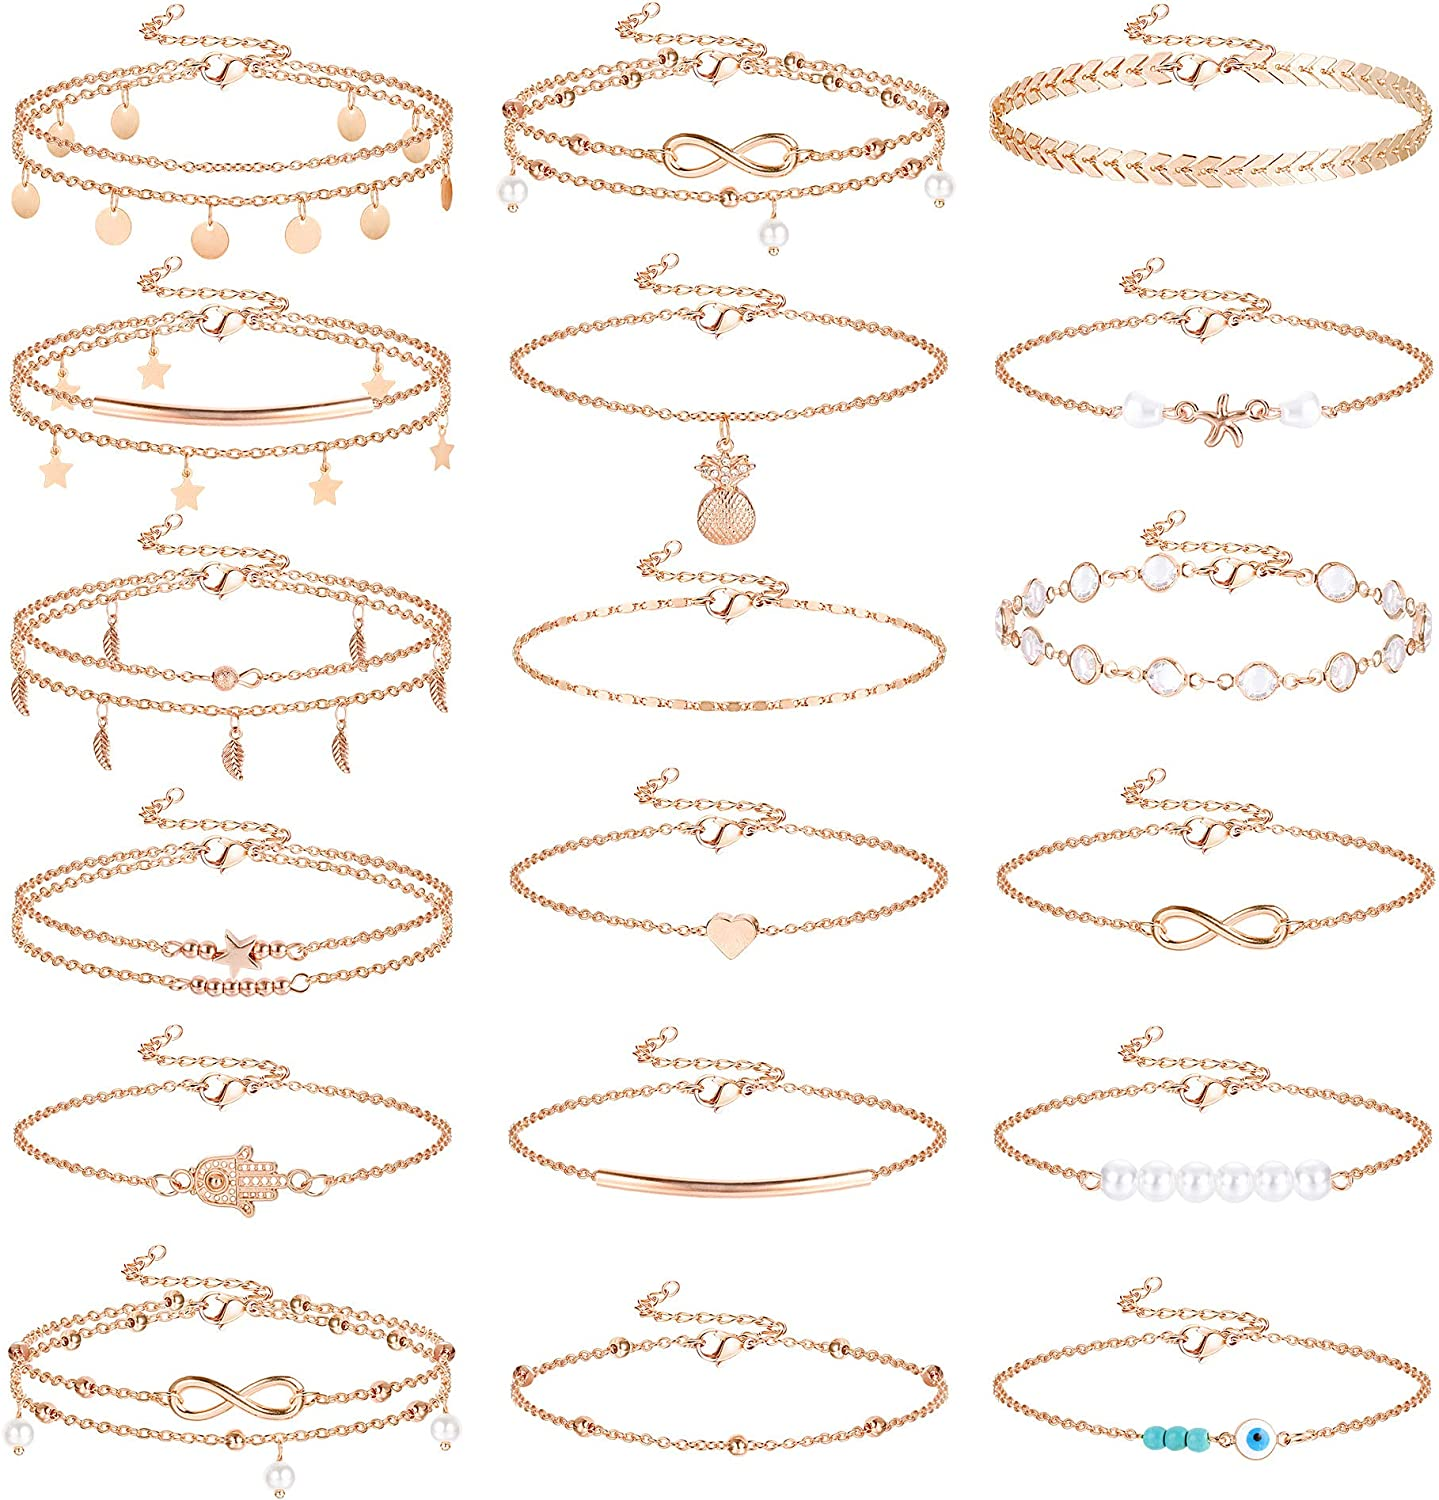 Jstyle 18Pcs Ankle Bracelets for Women Pearl Chain Evil Eye Beach Boho Layered Adjustable Cute Anklet Foot Wholesale Jewelry